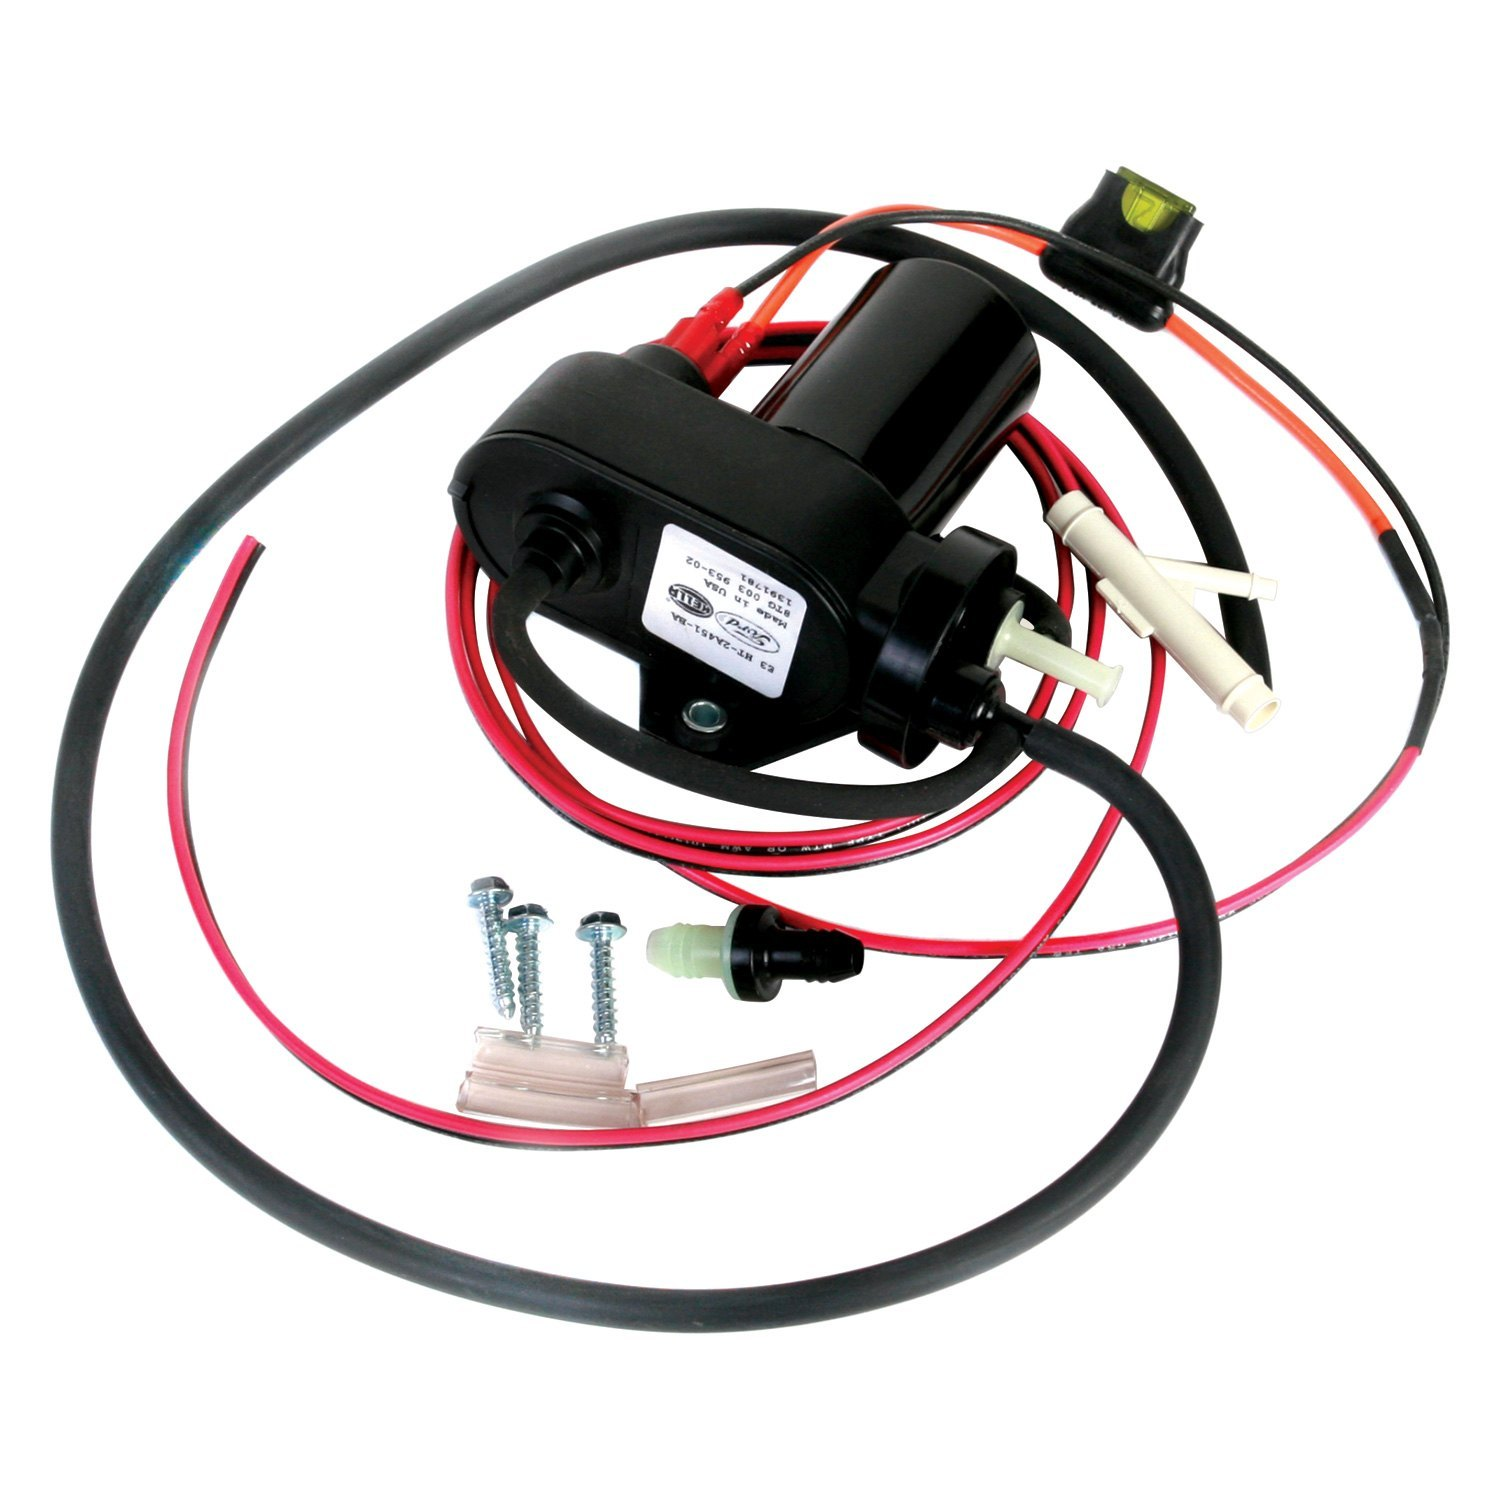 Rv 12 Volt Amazon Com American Technology Components Dc Powermax Pm3100 120v Ac To 12v Converter Battery Charger 100 Amp Nsa Products V P Vacuum Pump